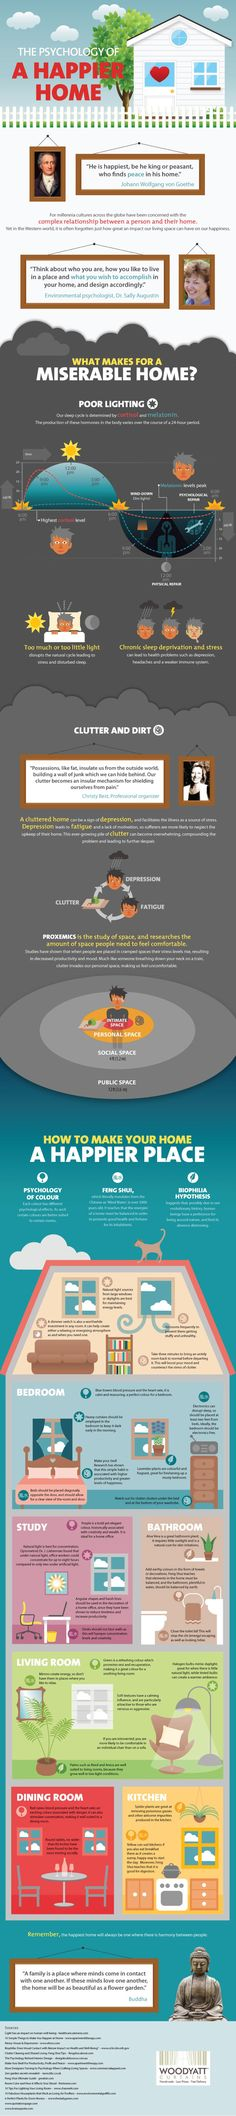 #INFOgraphic > Make Happy Home: Color psychology, Feng Shui and Biophilia are effective approaches for rejuvenating your home environment. Find some tips that will help you to add a little happiness and harmony to your home.  > http://infographicsmania.com/make-happy-home/